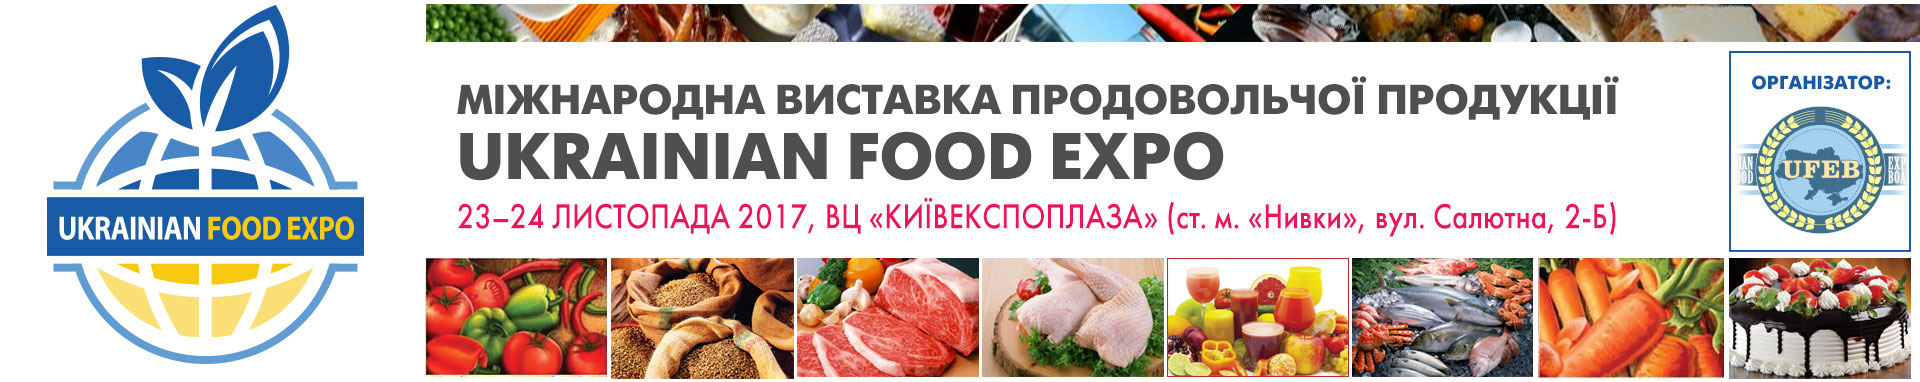 UKRAINIAN FOOD EXPO 2017